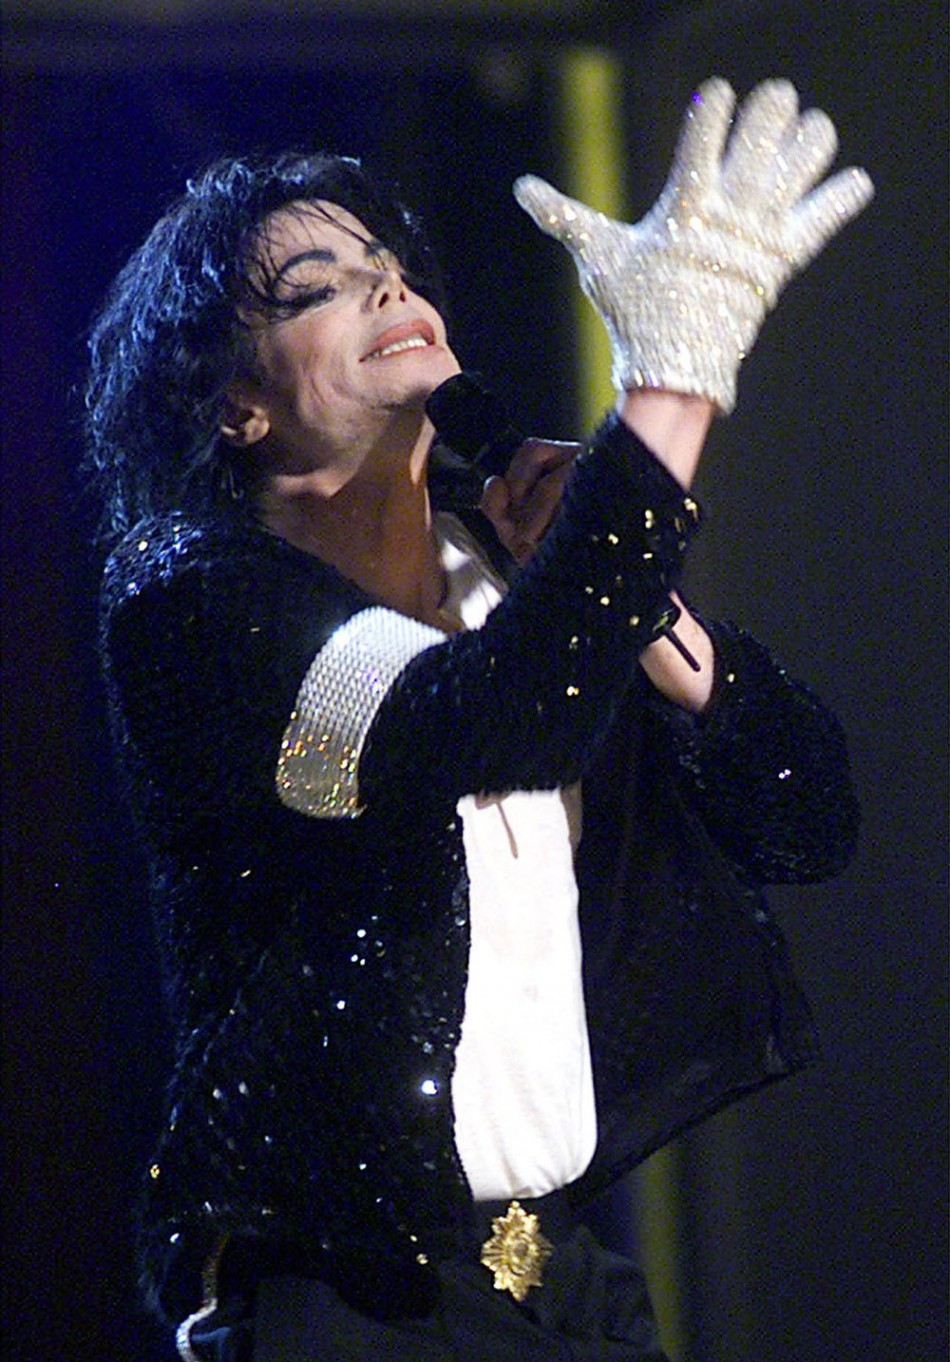 Michael jackson tribute concert to take place in cardiff for Jackson galaxy band